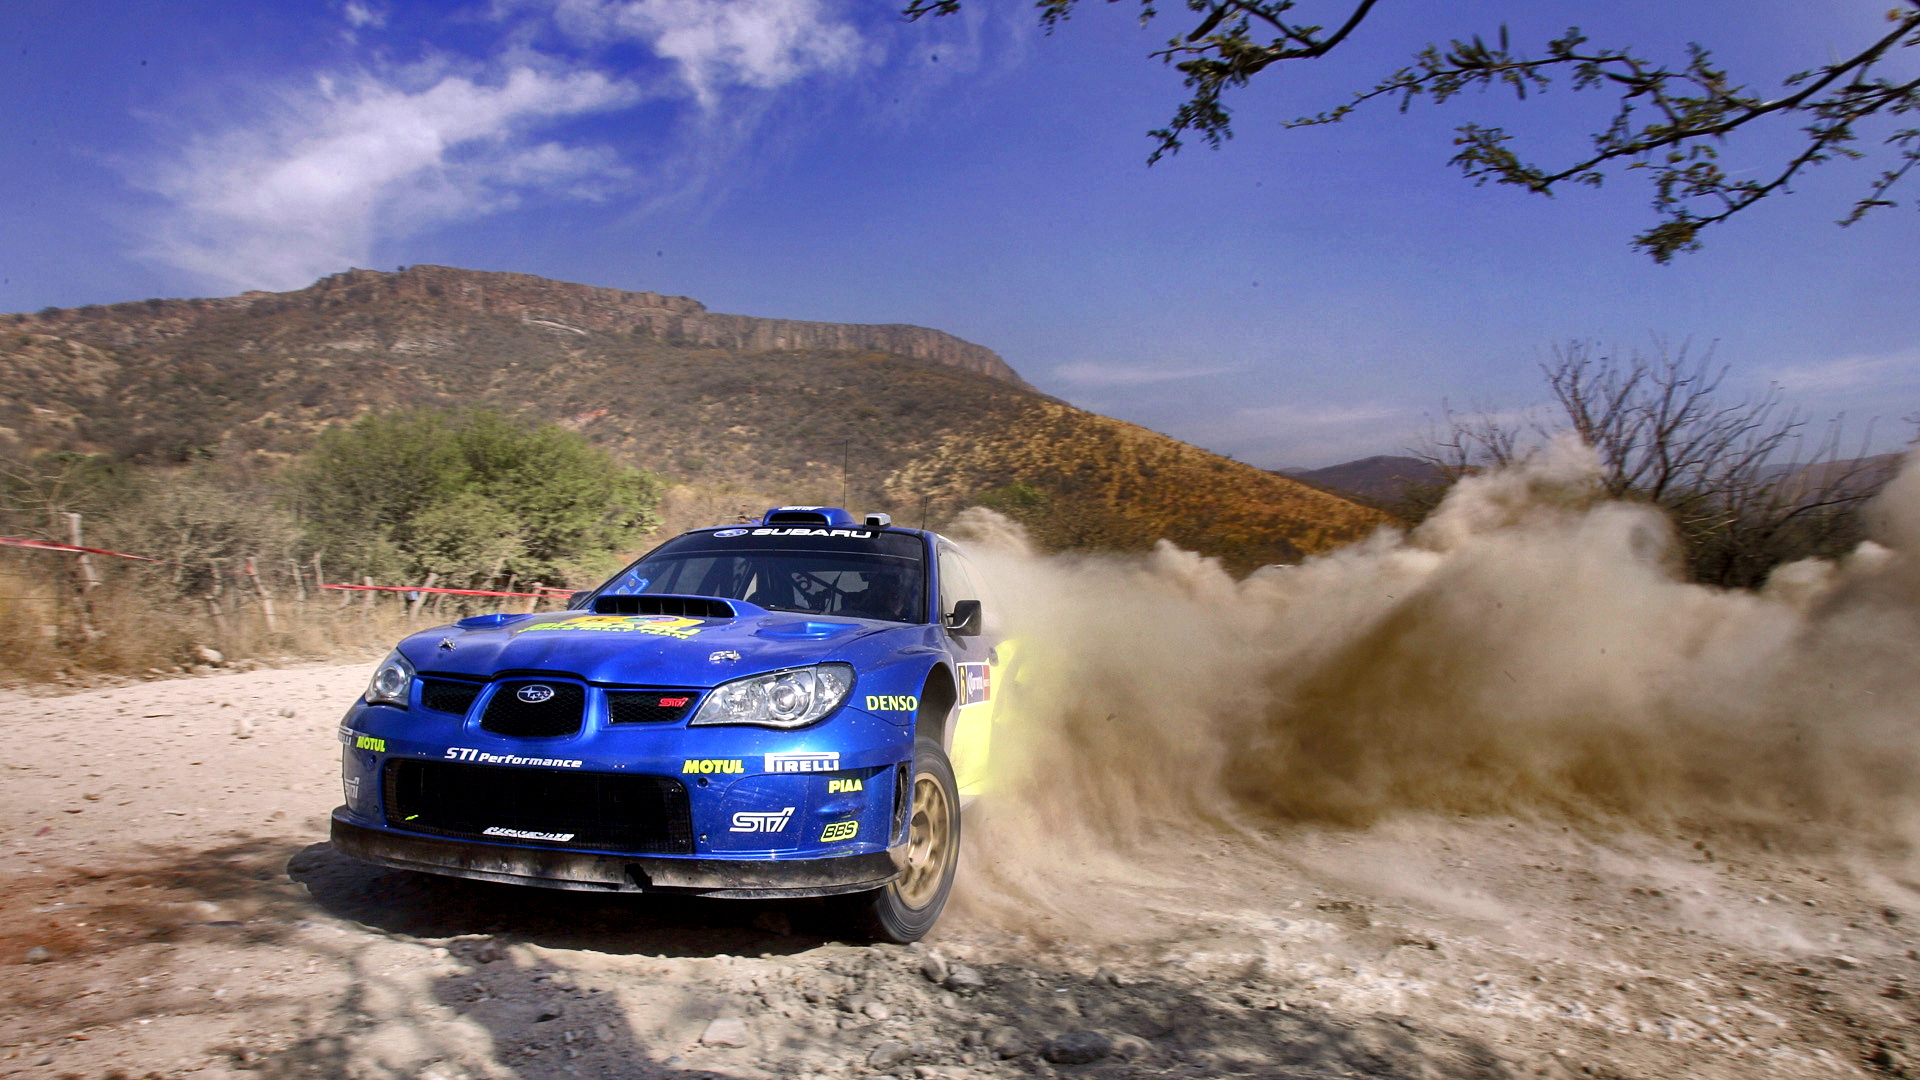 ... Rally Wallpaper; Rally Wallpaper